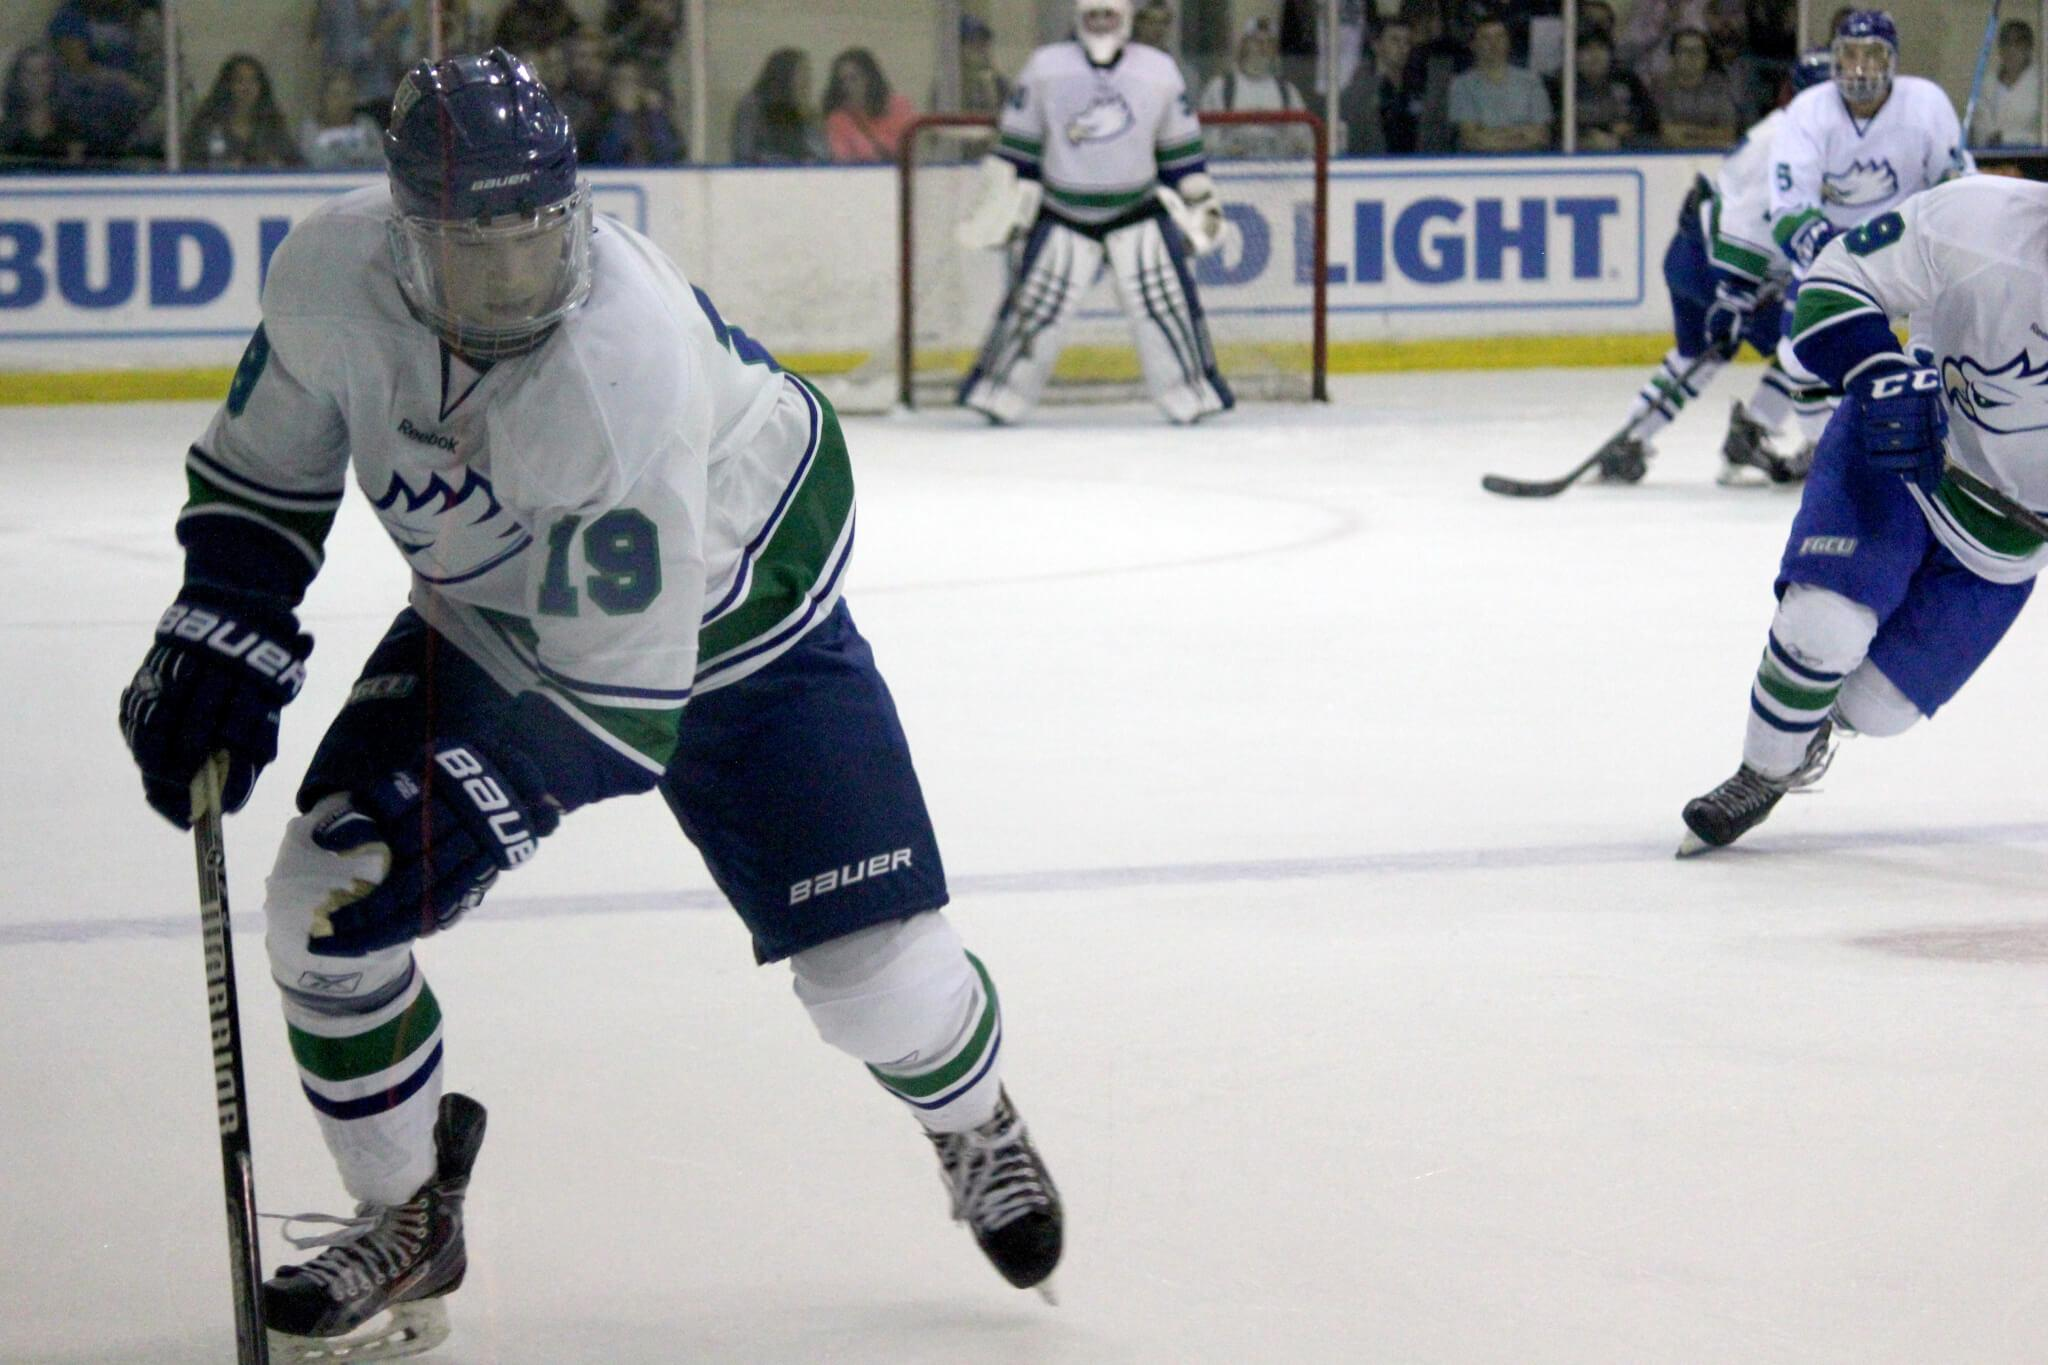 FGCU DII hockey takes first game of Eagle Family Weekend